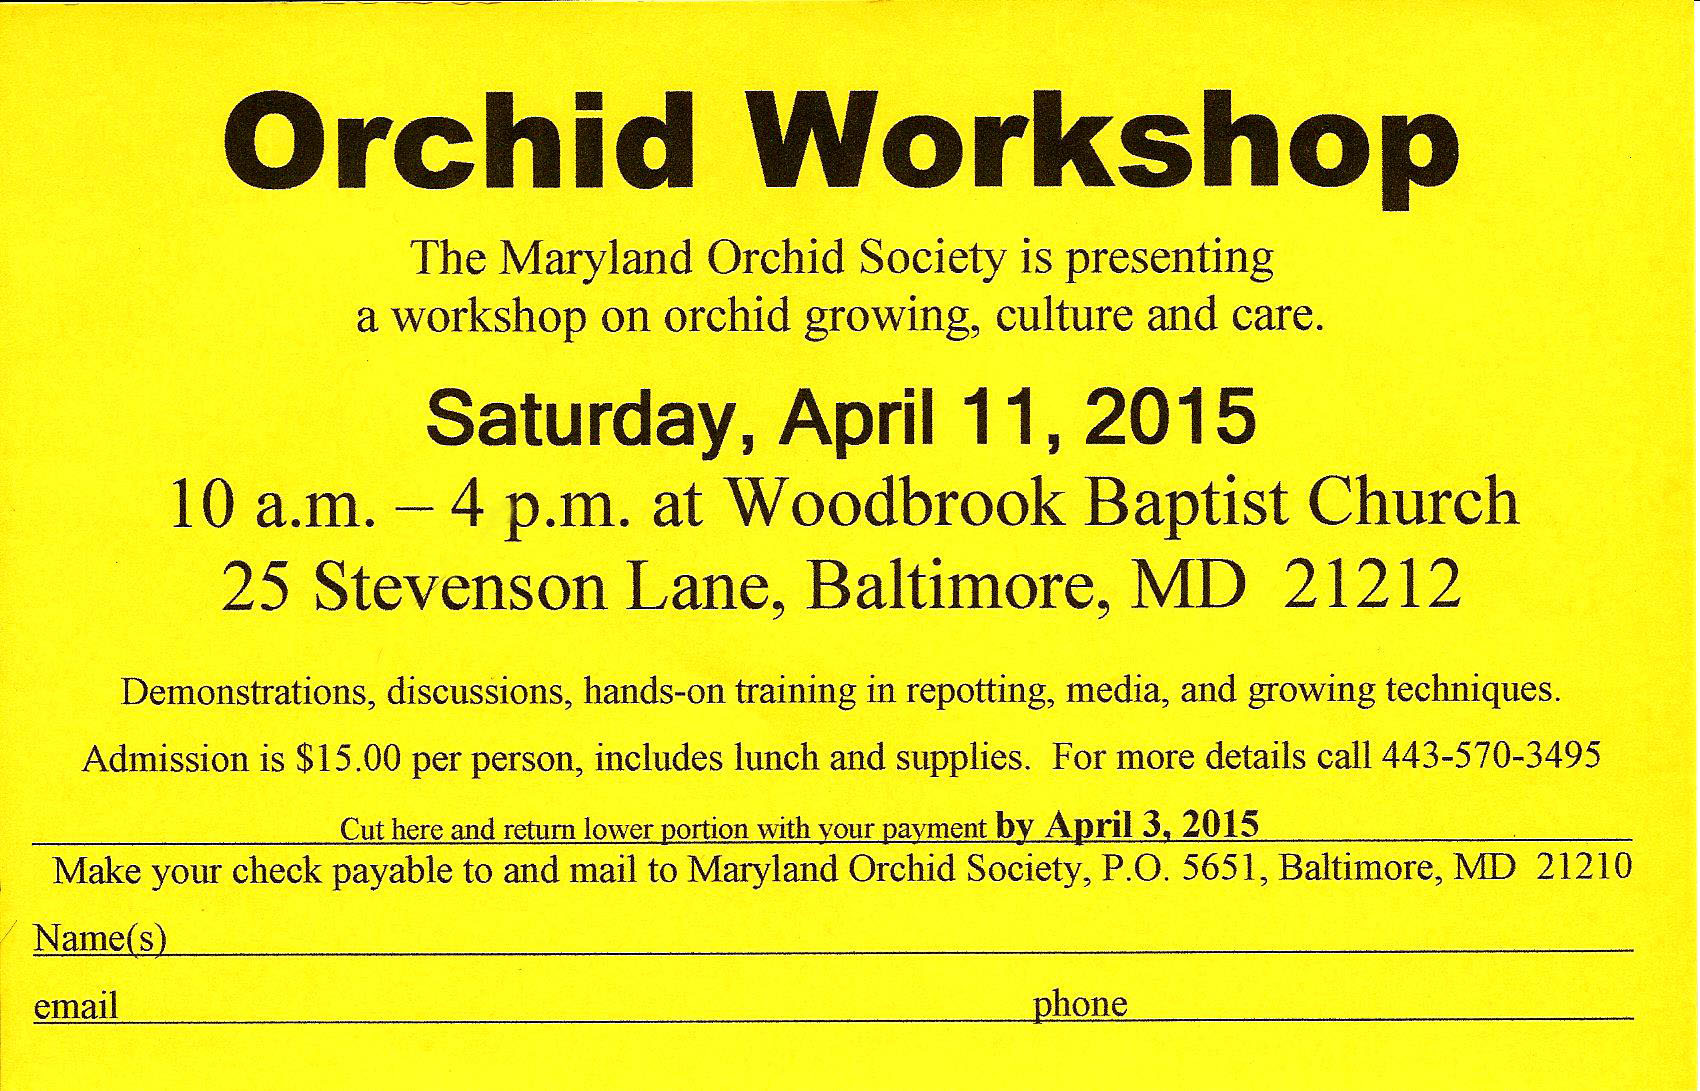 Maryland Orchid Society Orchid Workshop 2015